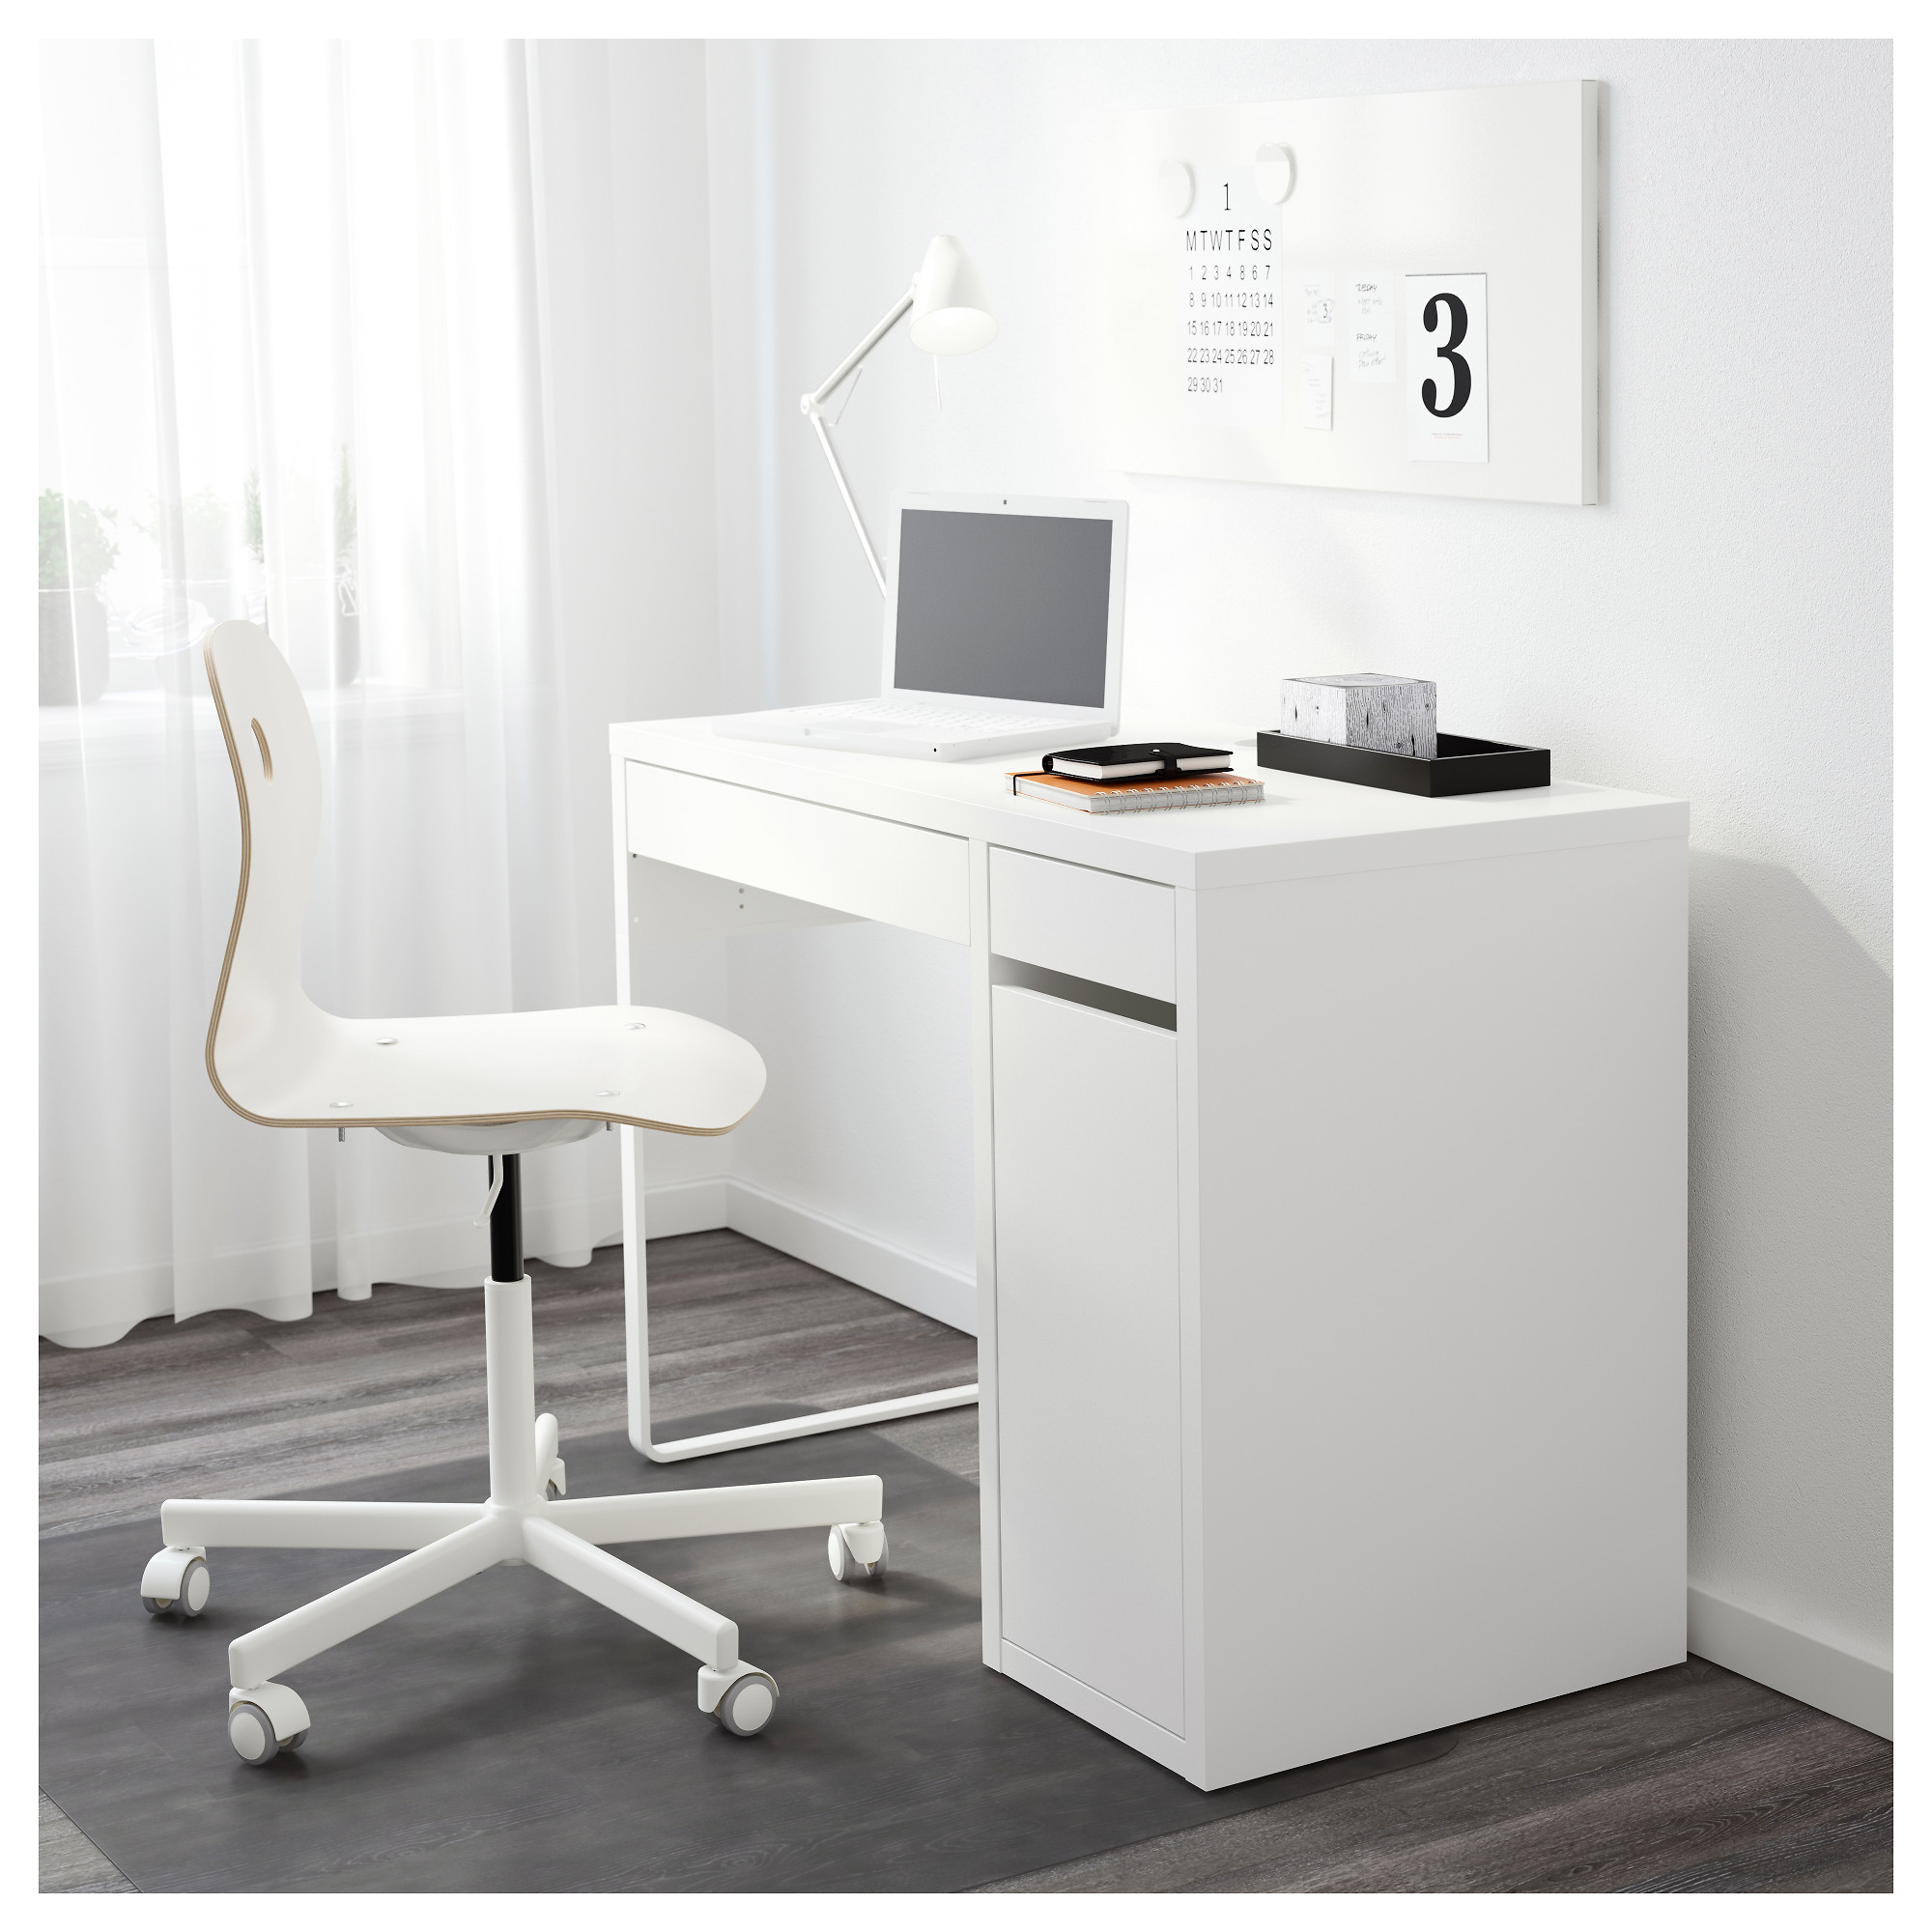 cheap drawer swivel small furniture in plus tray home piquant keyboard table white antique computer with together lamp drawers and onwheel desk majestic ah on ideas